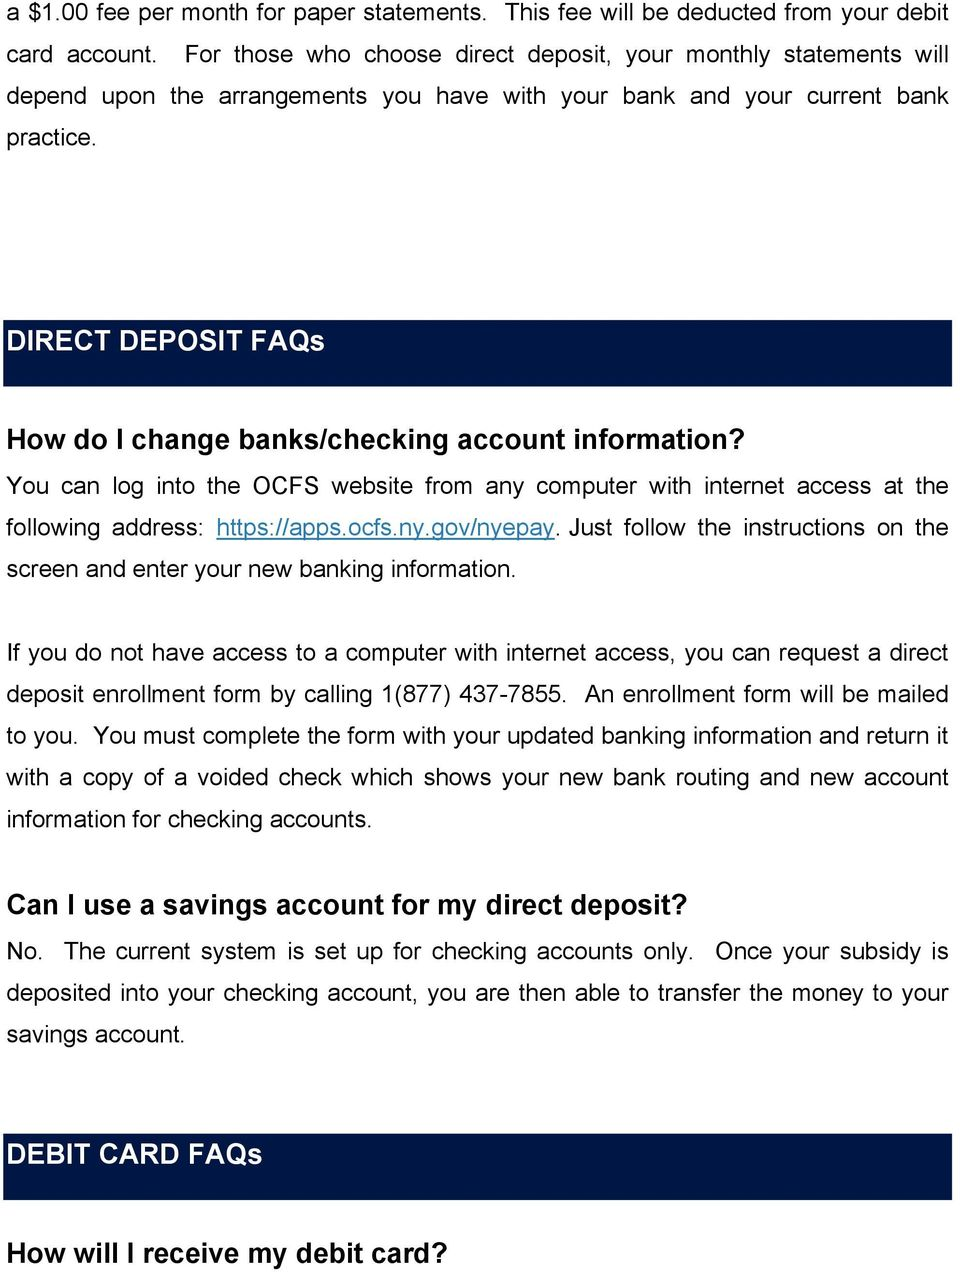 DIRECT DEPOSIT FAQs How do I change banks/checking account information? You can log into the OCFS website from any computer with internet access at the following address: https://apps.ocfs.ny.gov/nyepay.